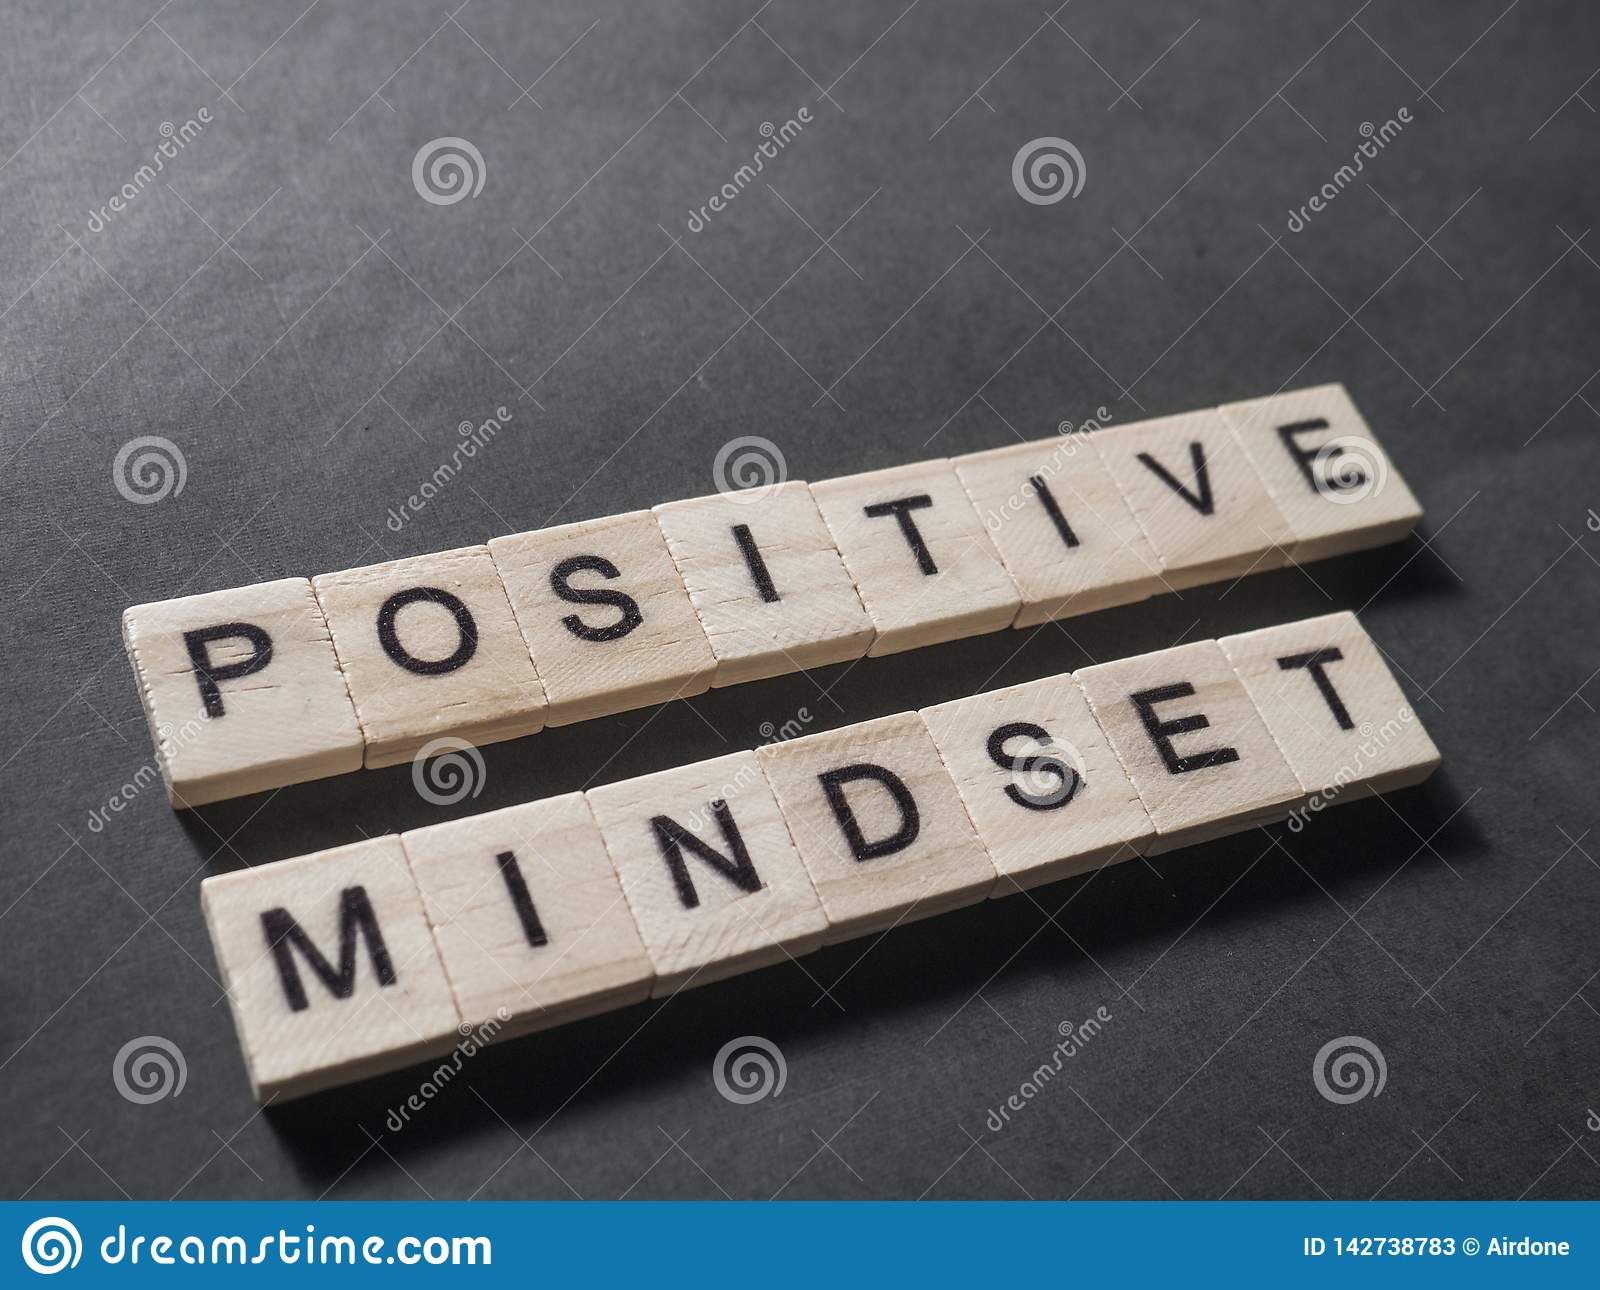 positive mindset motivational words quotes concept stock image